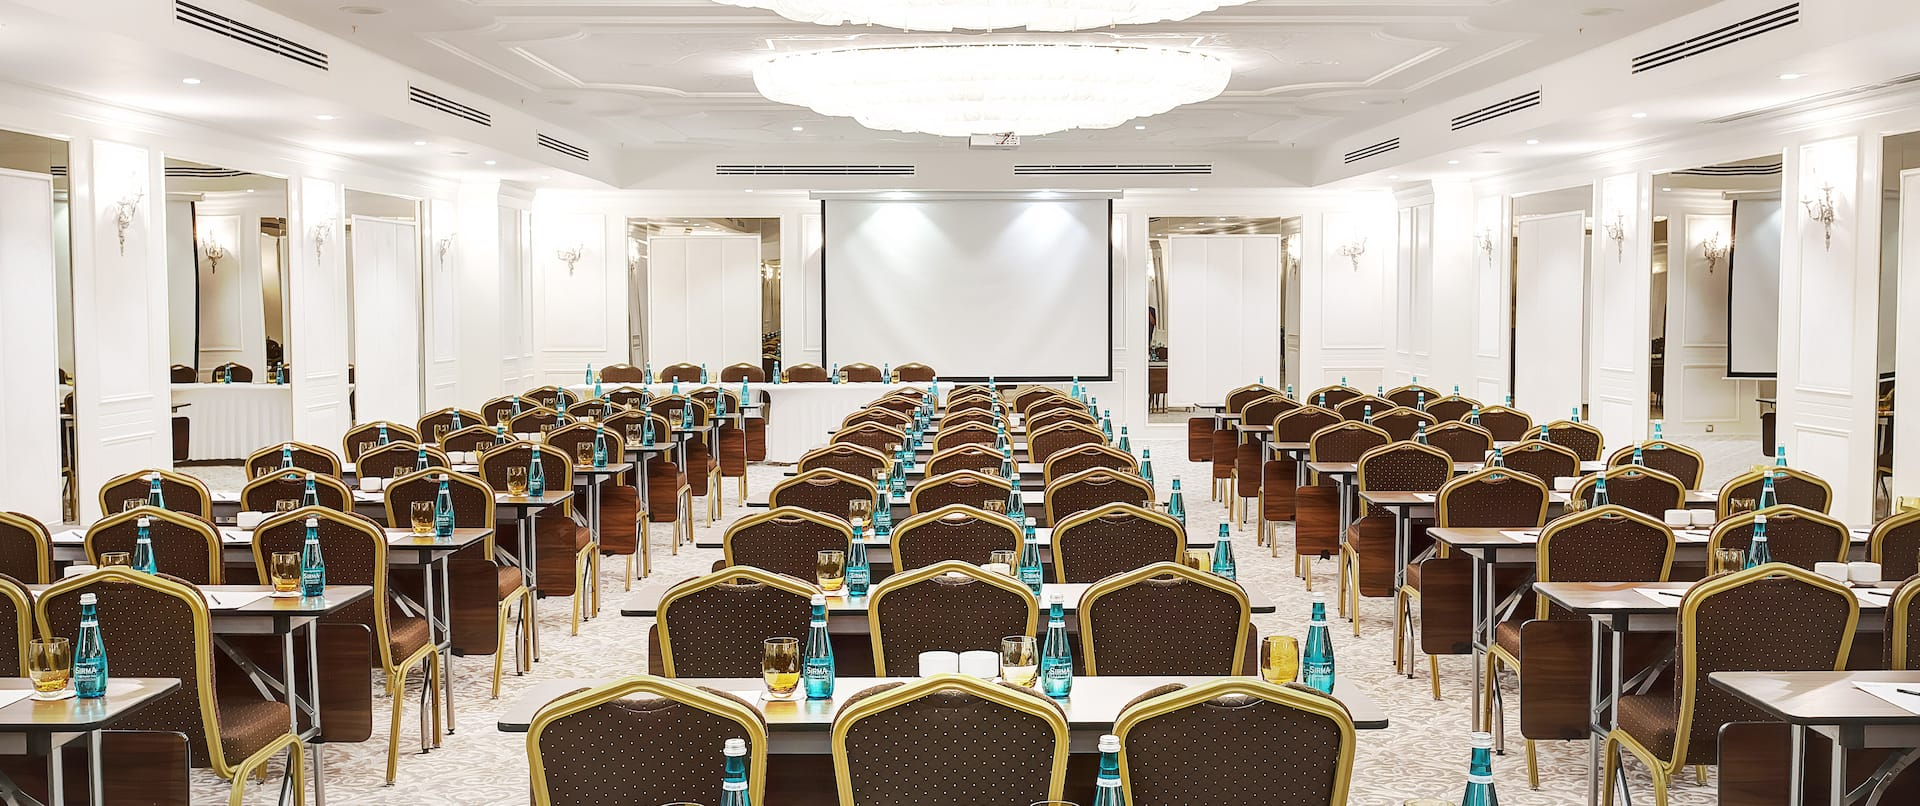 Meeting Room with Classroom Layout and Projector Screen